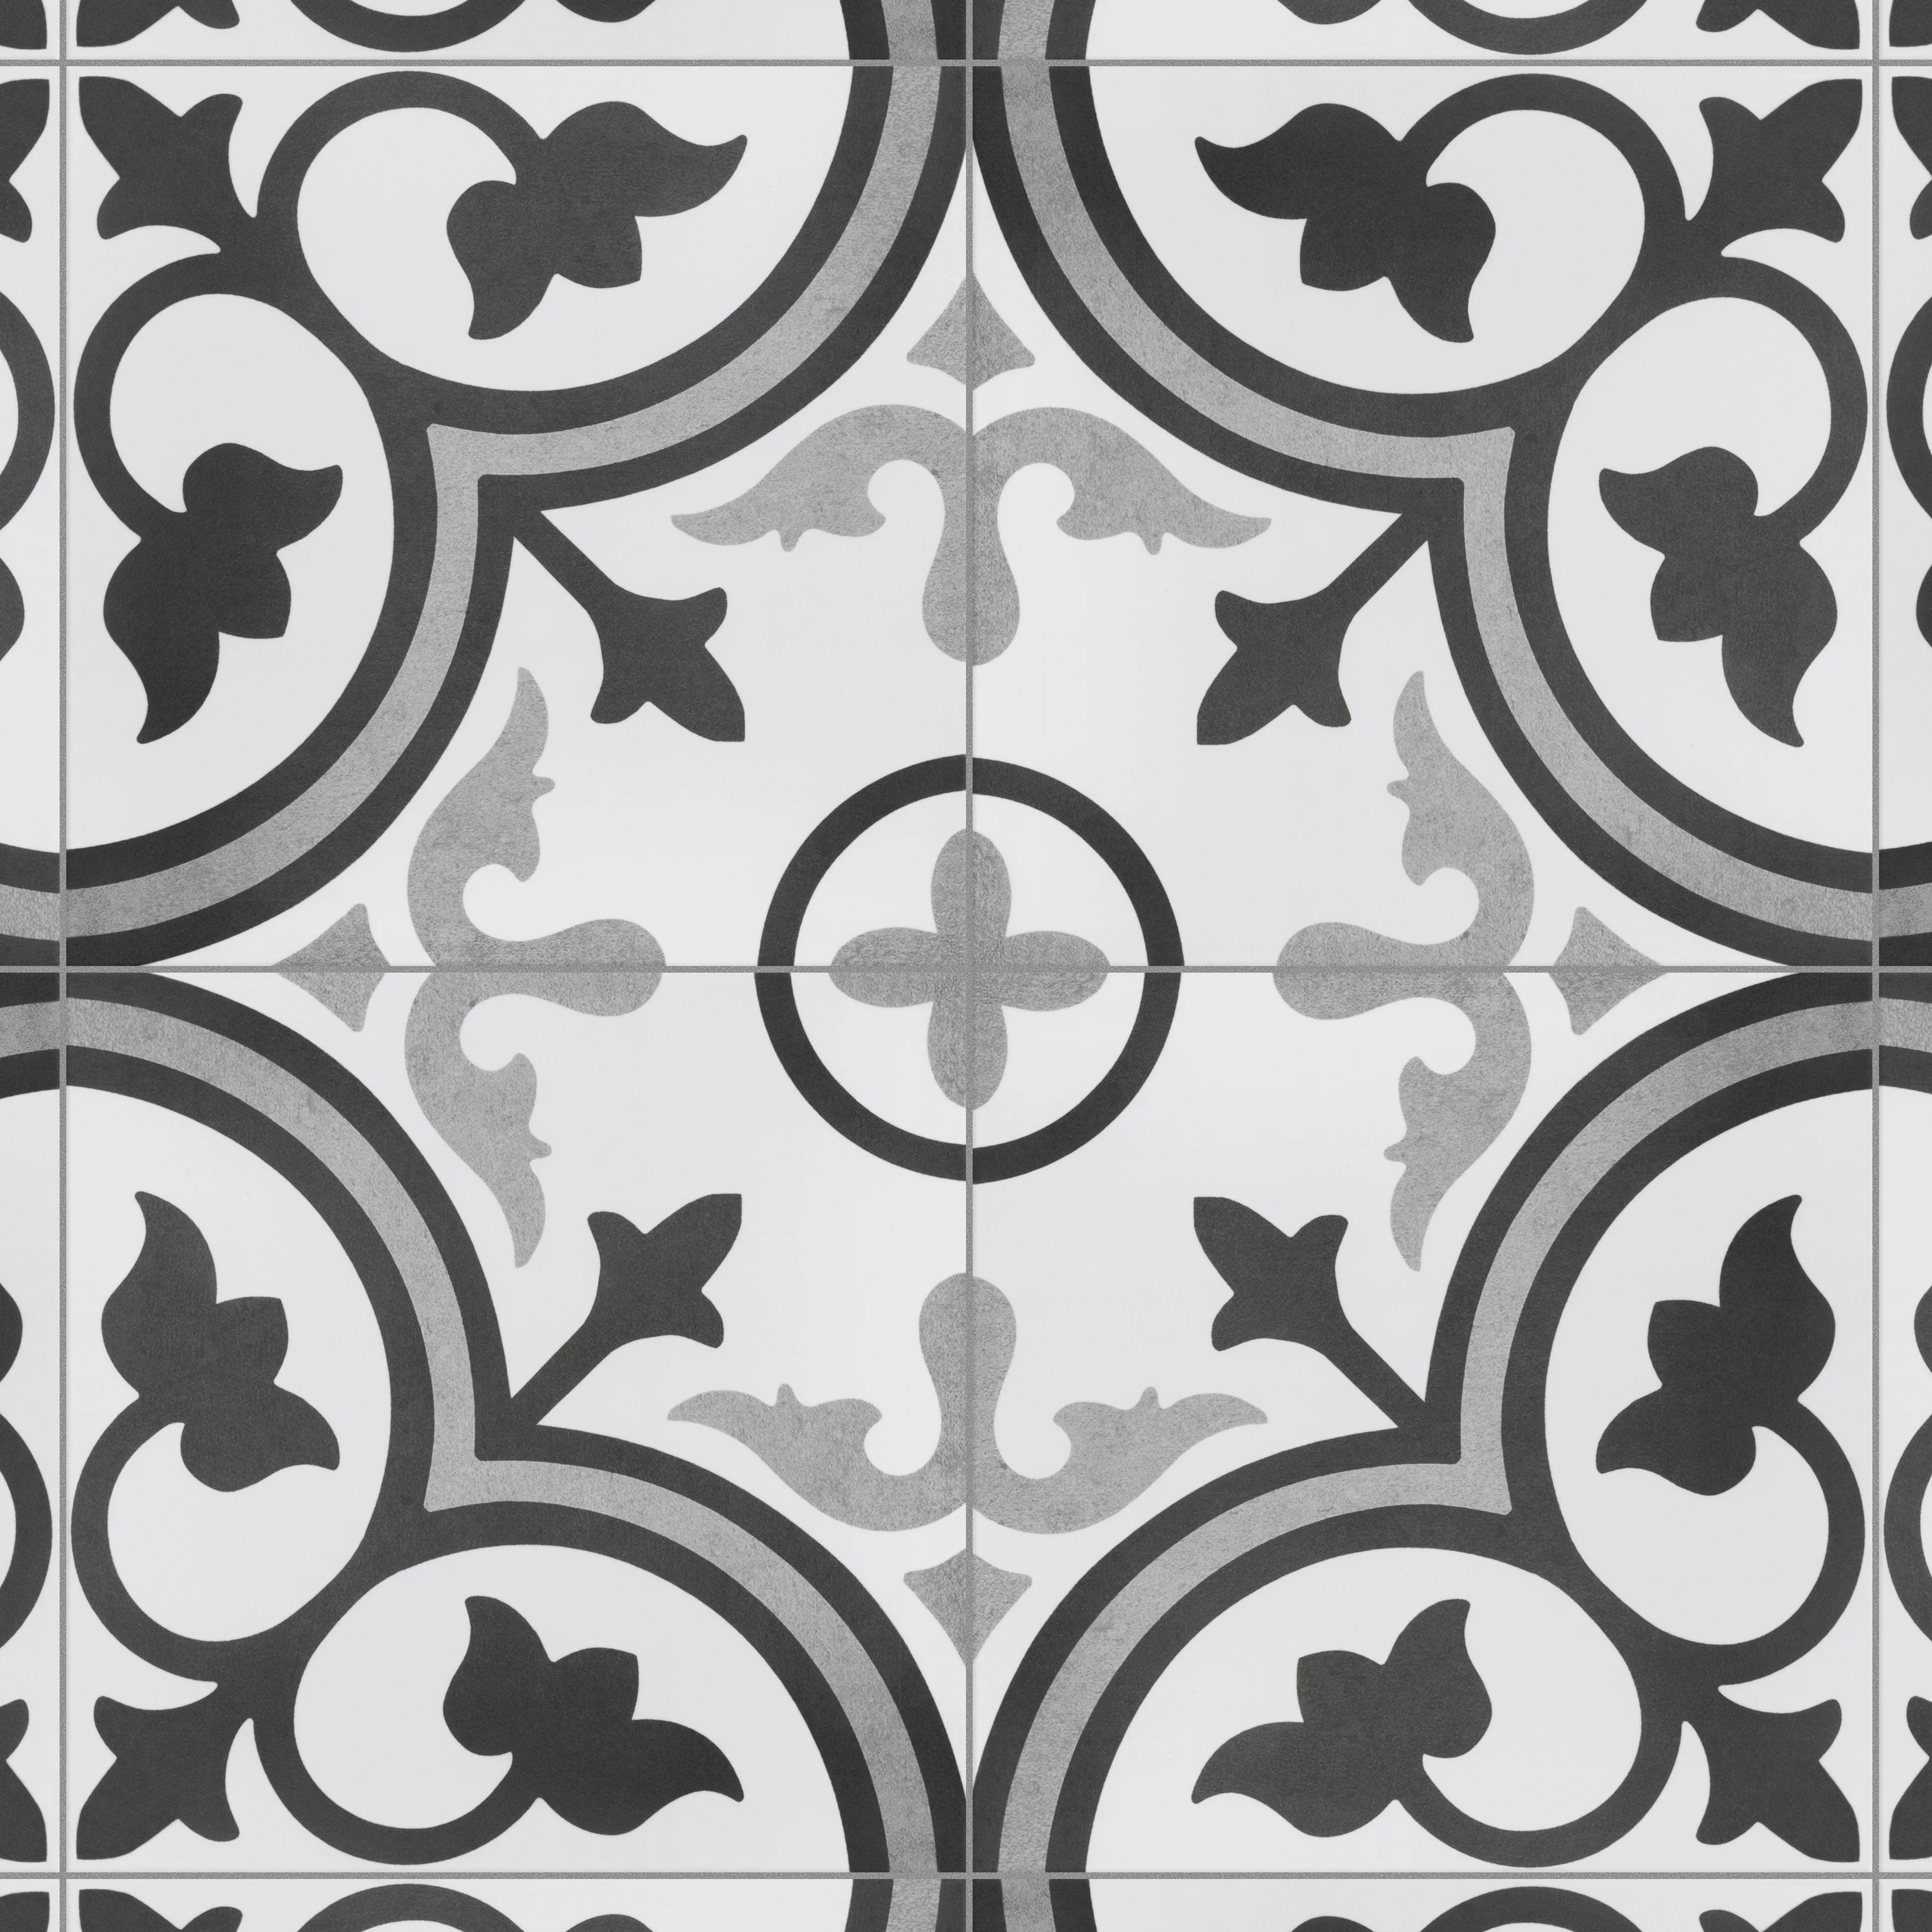 amberes classic ceramic spanish 12 1 4 x 12 1 4 patterned wall floor tile